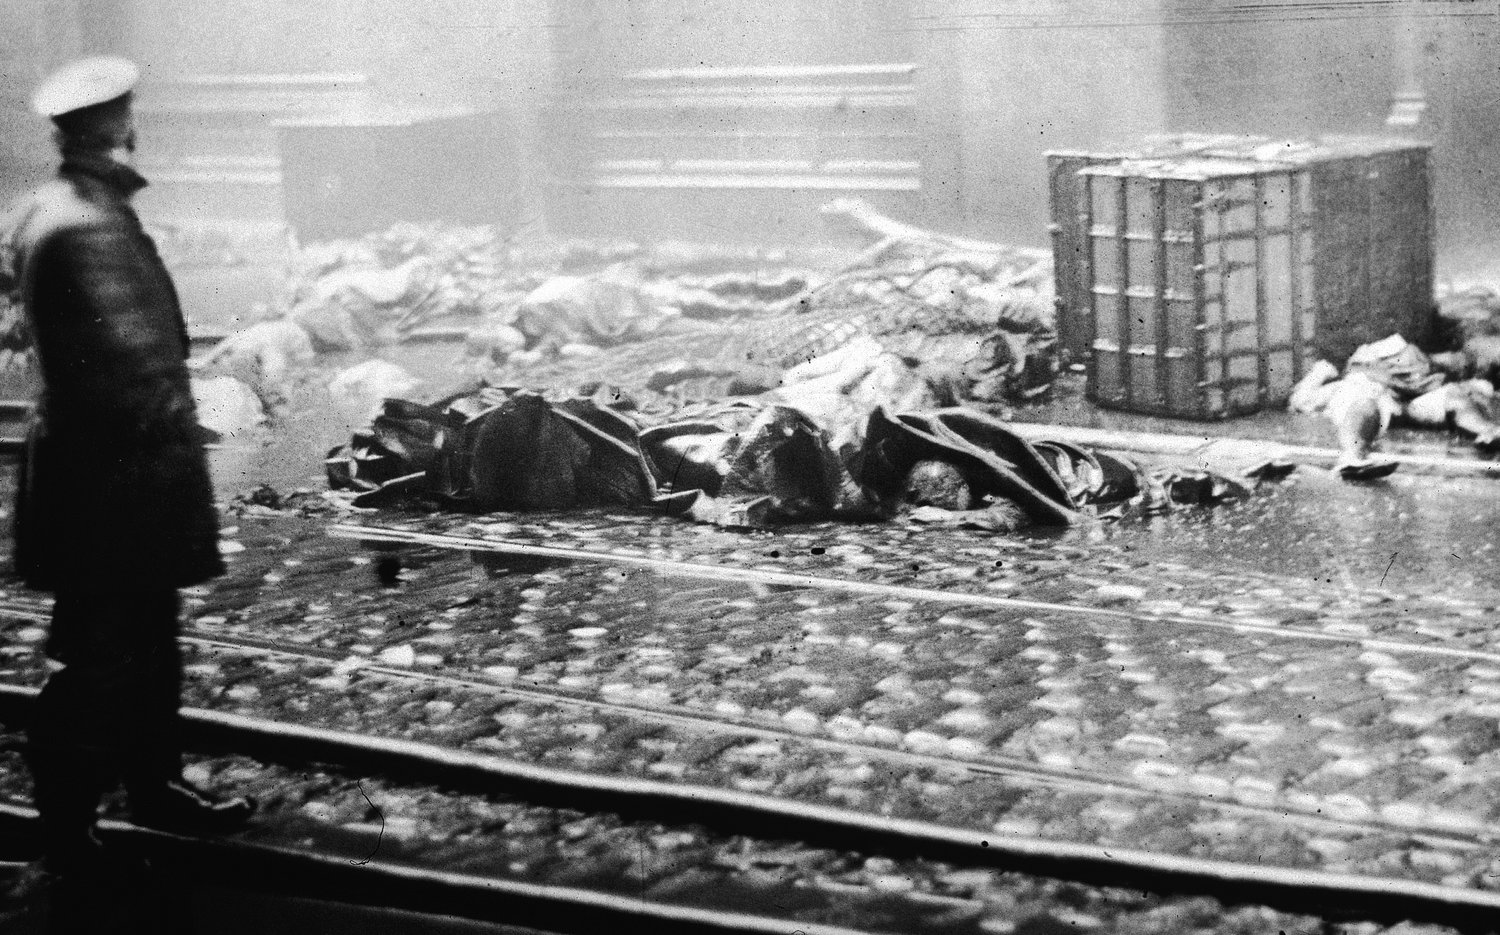 A policeman stands in the street, observing charred rubble and corpses of workers following the Triangle Shirtwaist Company fire in New York on March 25, 1911.